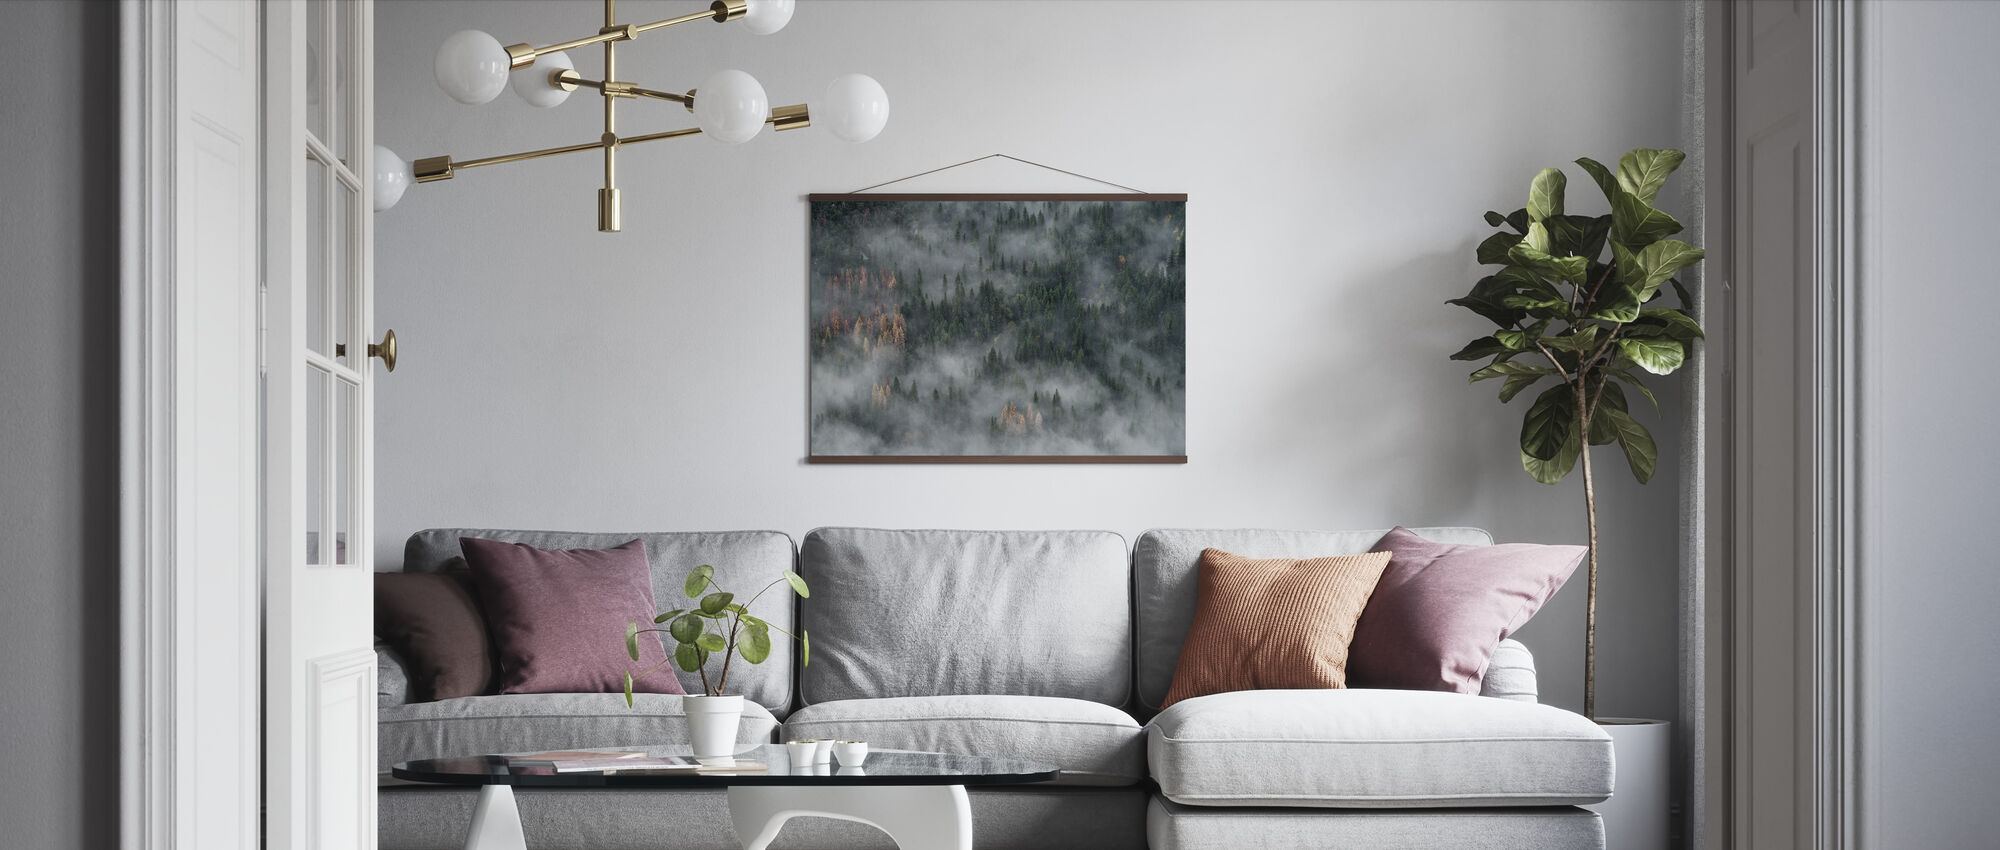 Pine Trees Forest - Poster - Living Room